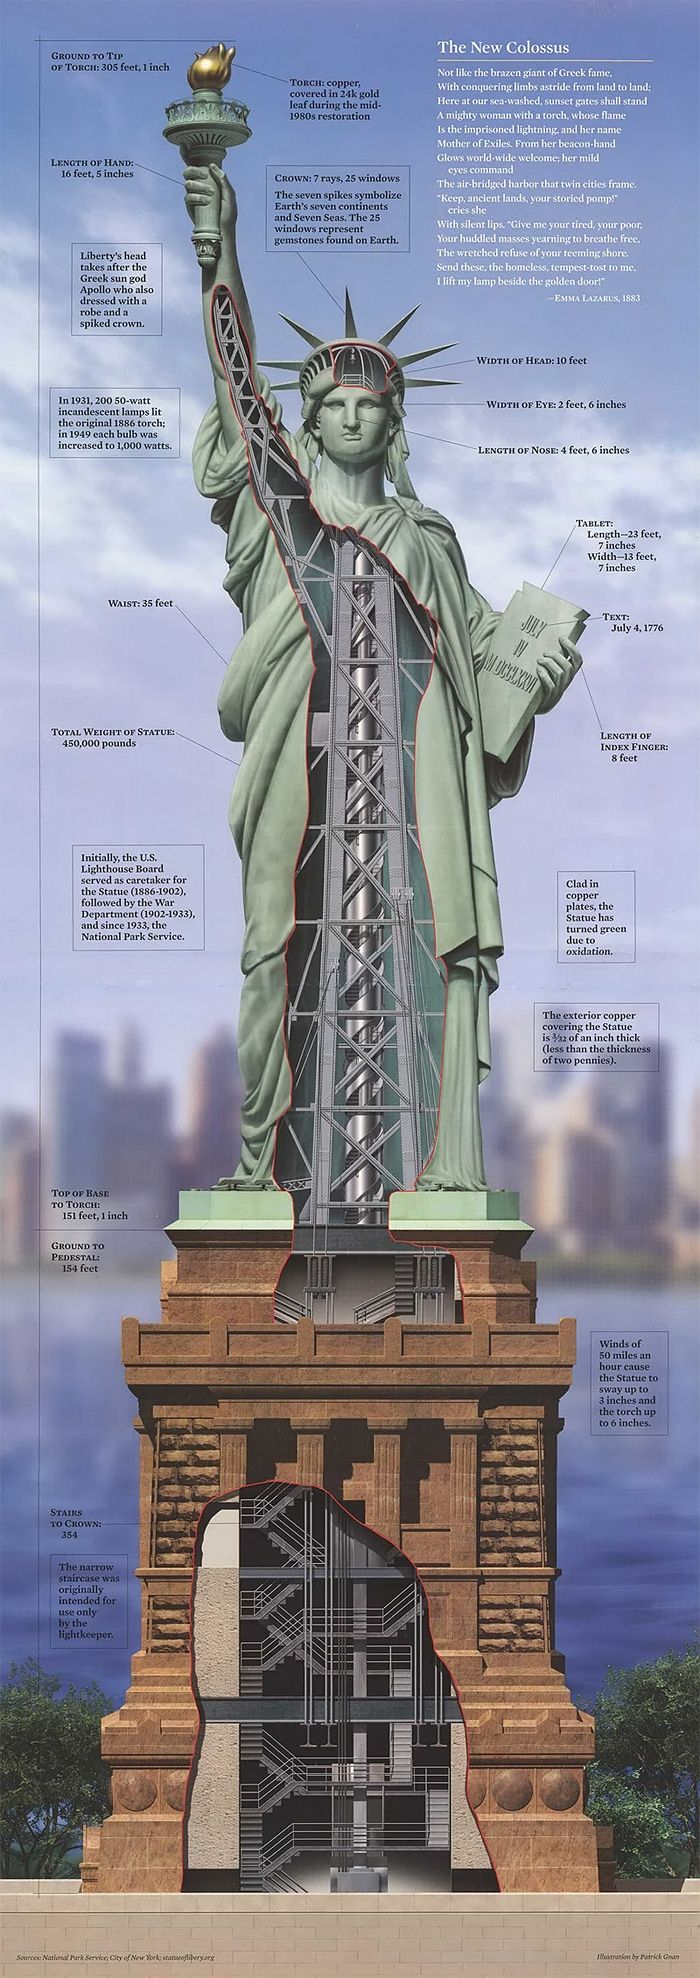 Image detail for inside the statue of liberty my modern metropolis